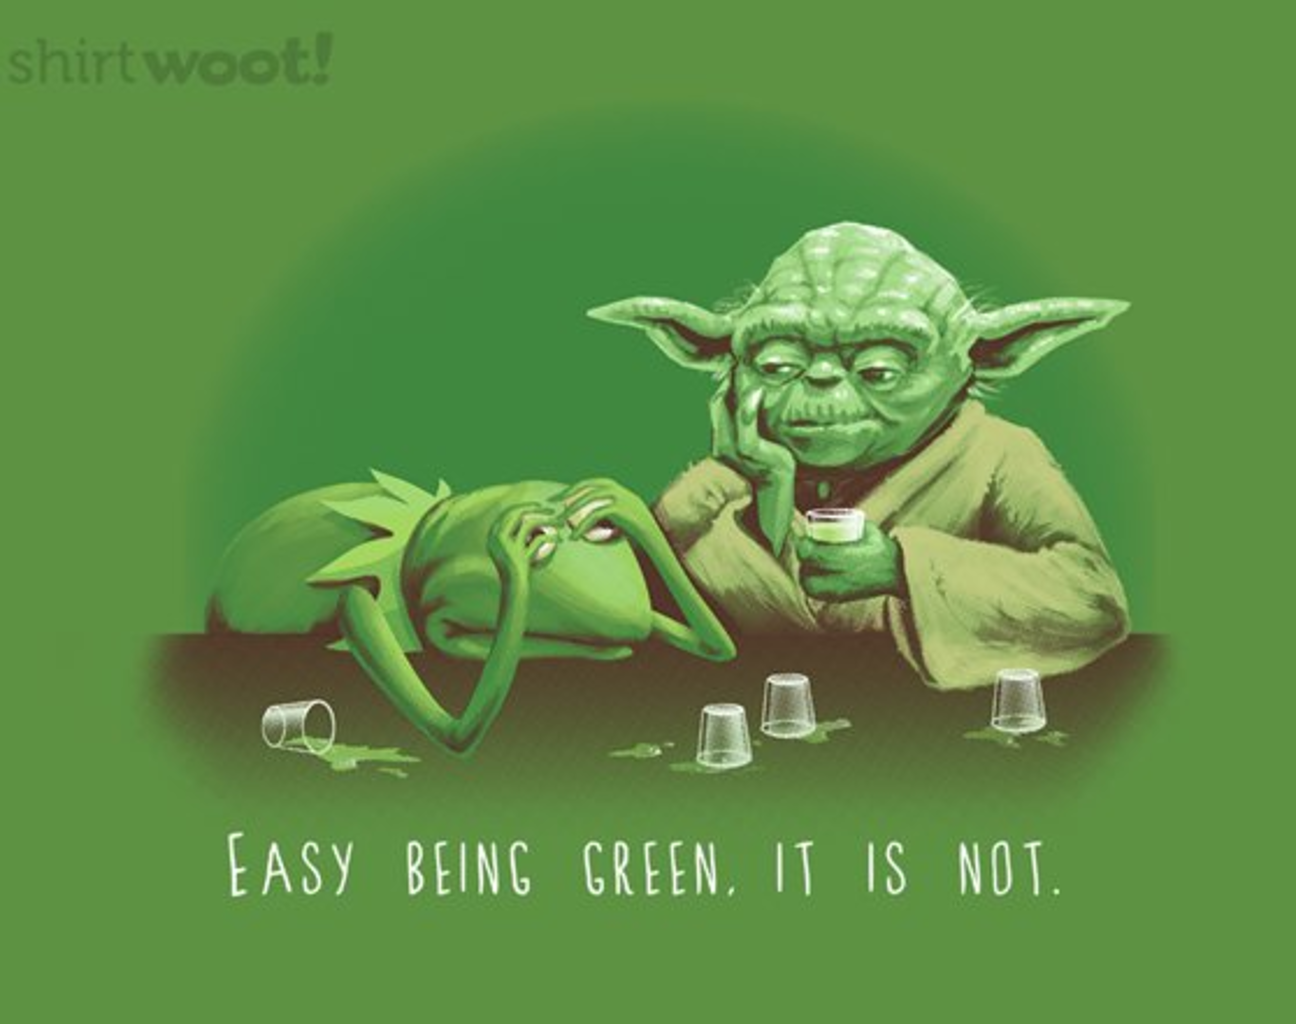 Woot!: Not Easy Being Green - $15.00 + Free shipping